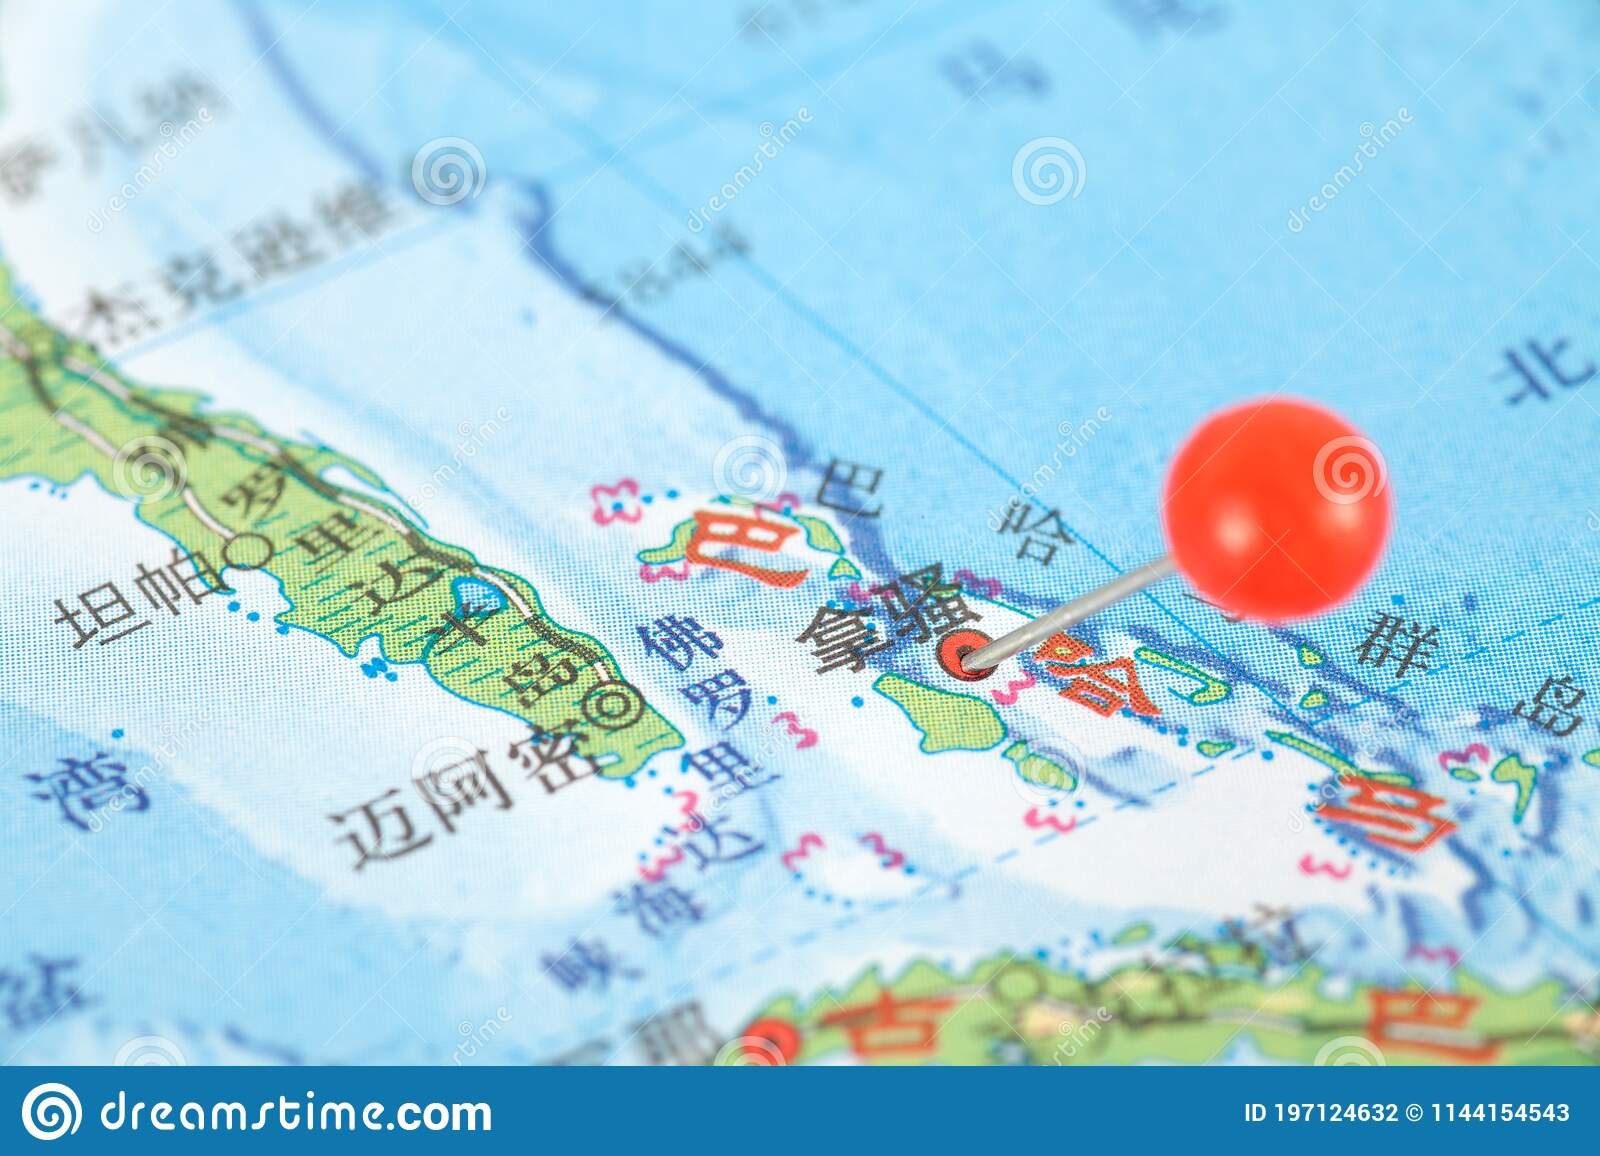 Picture of: Pushpins Mark The Location Of The Bahamas Capital Nassau On The Map Stock Photo Image Of Route Pushpin 197124632